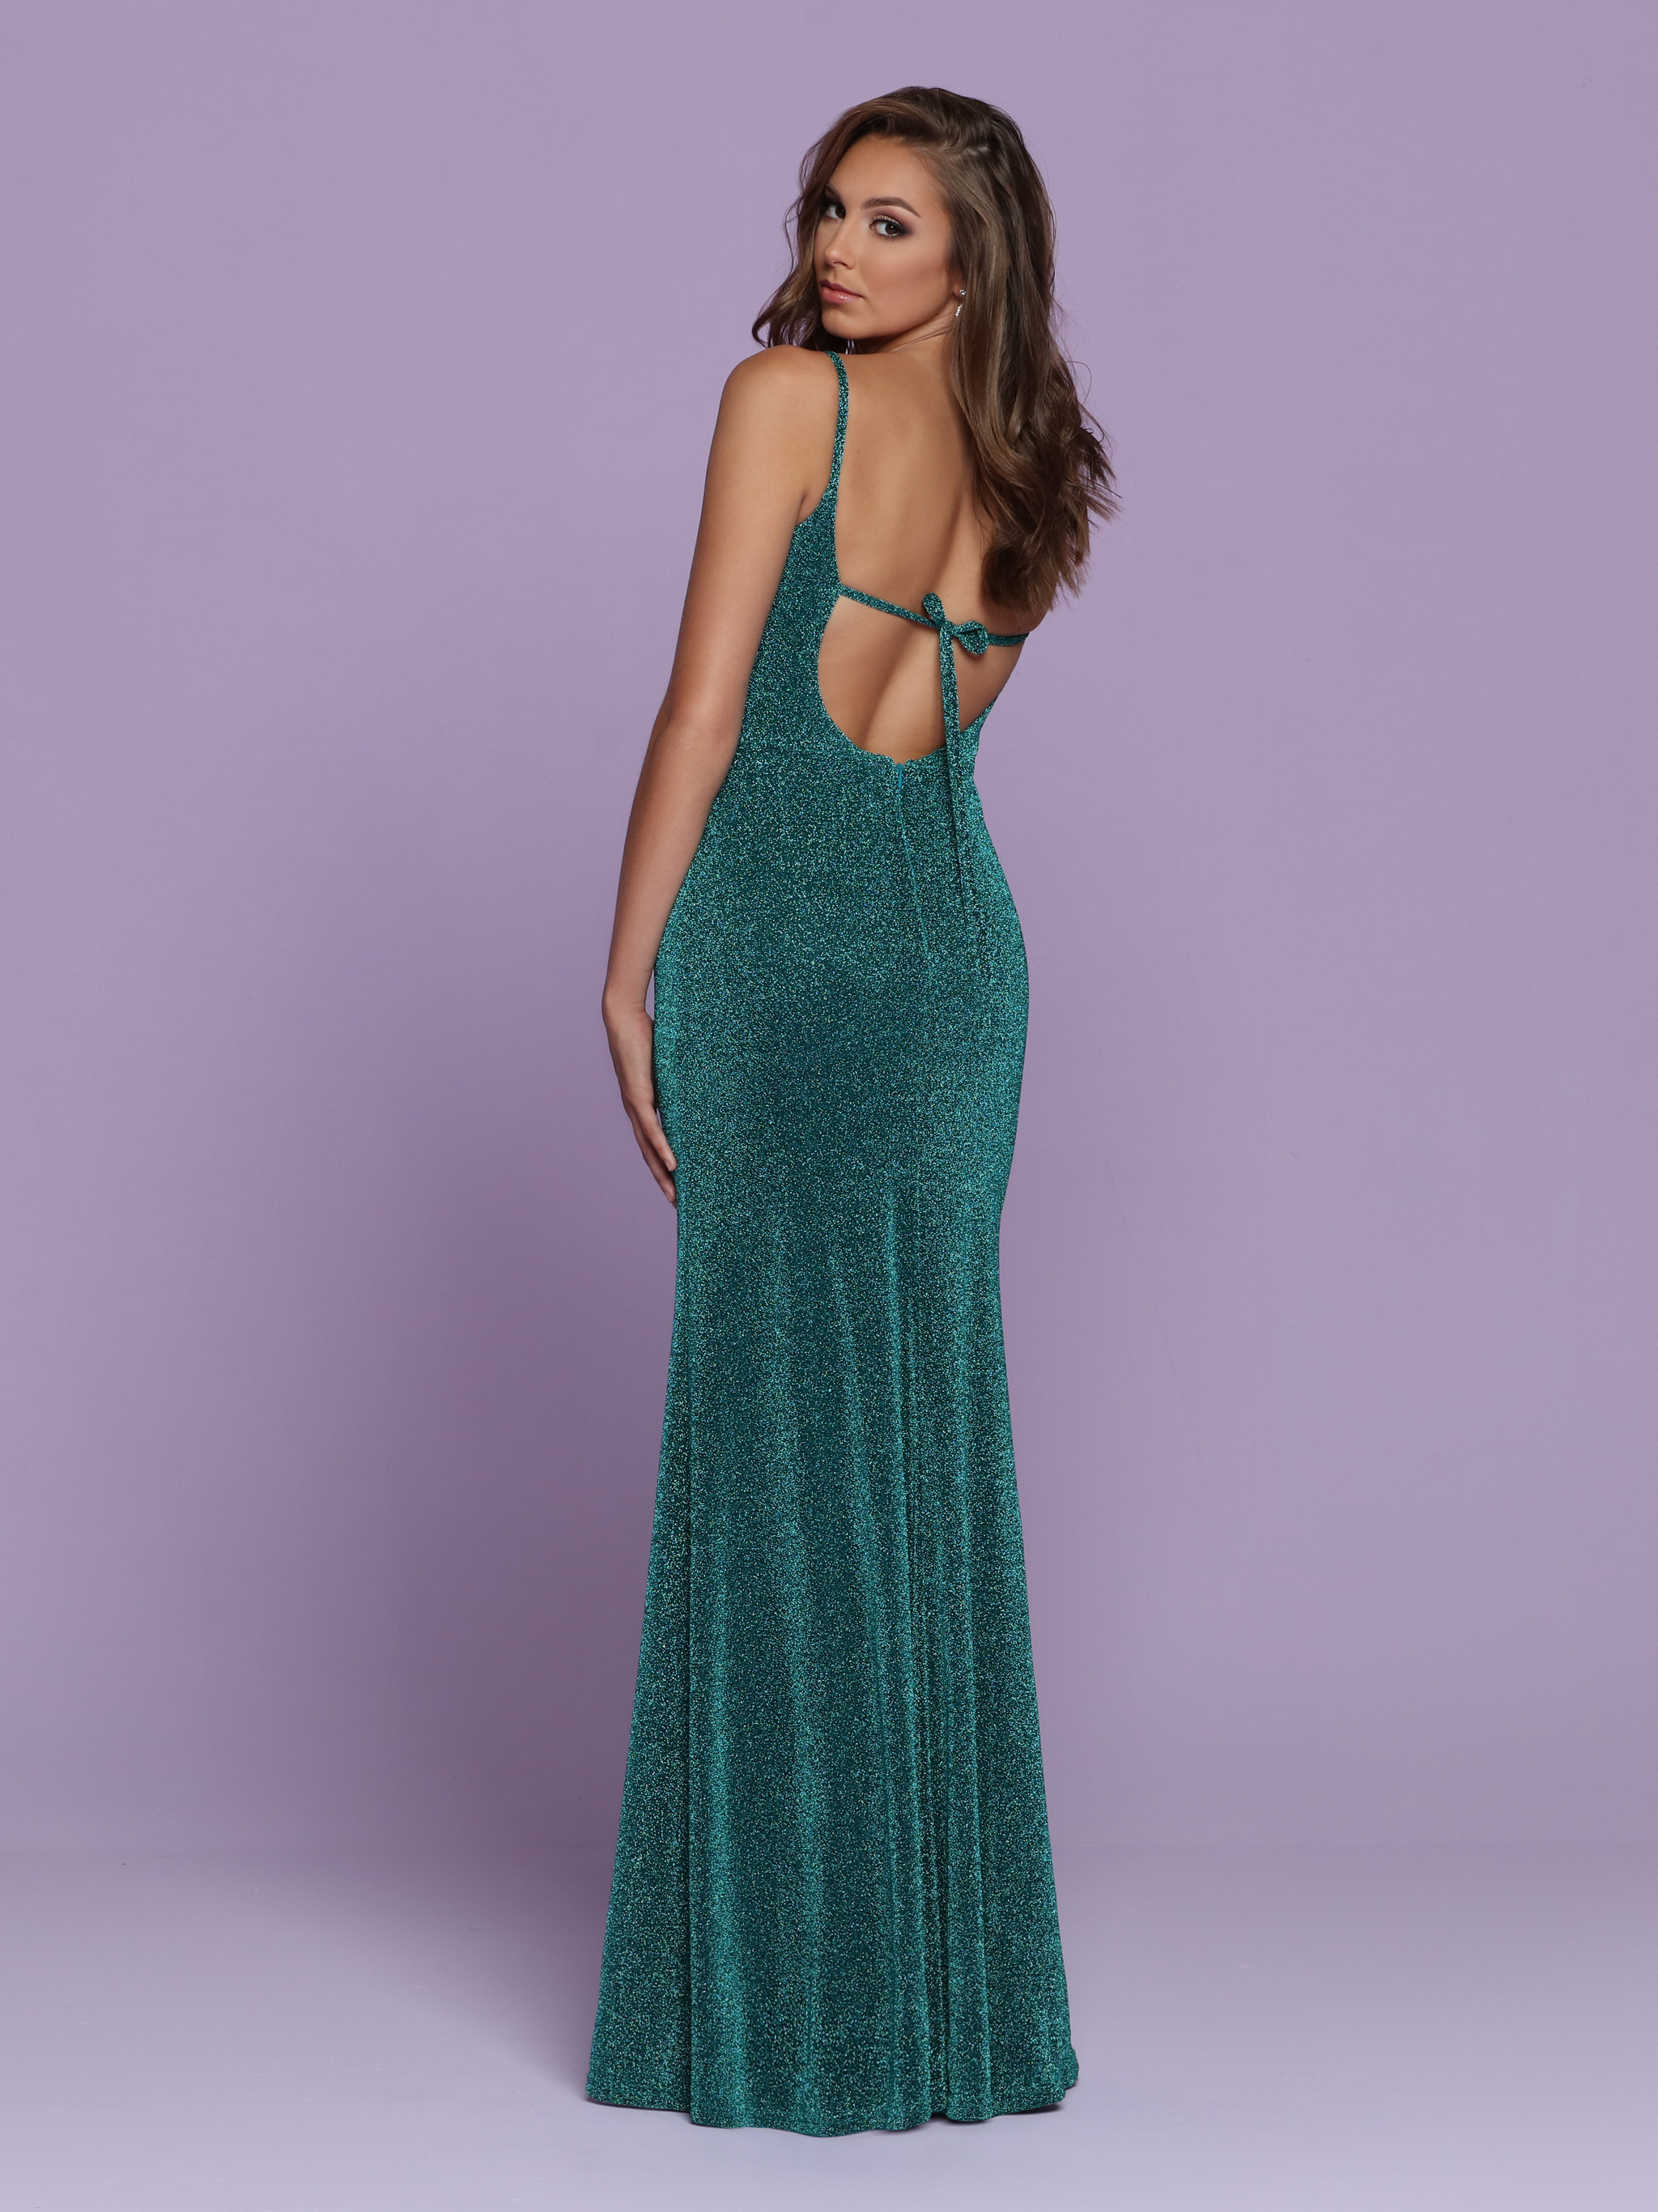 Image showing back view of style #72067